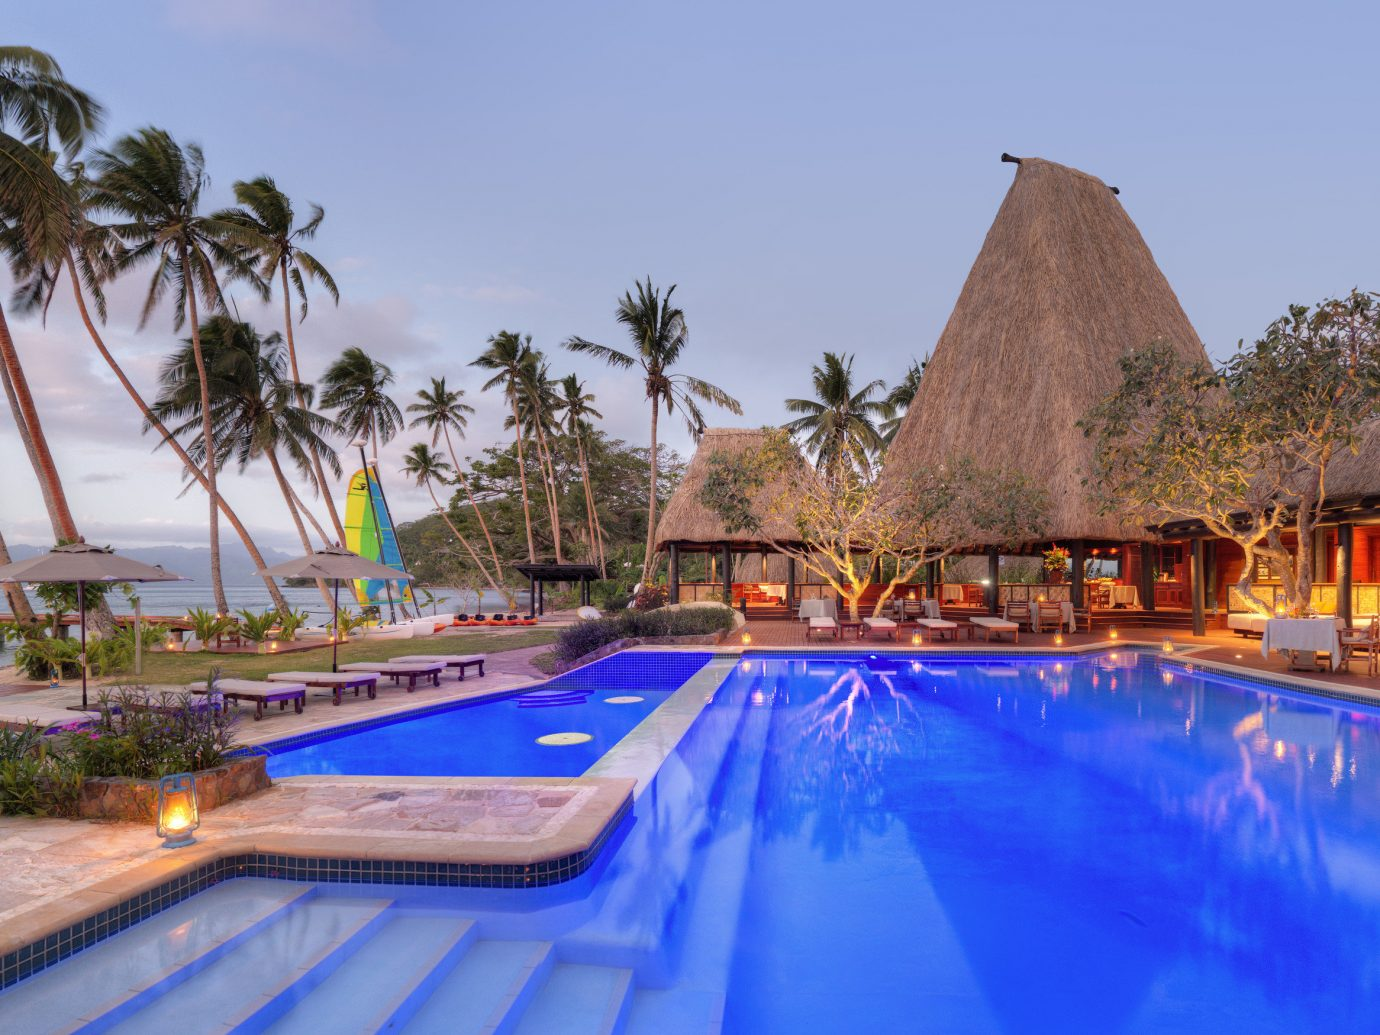 View of the pool at Jean-Michel Cousteau Resort